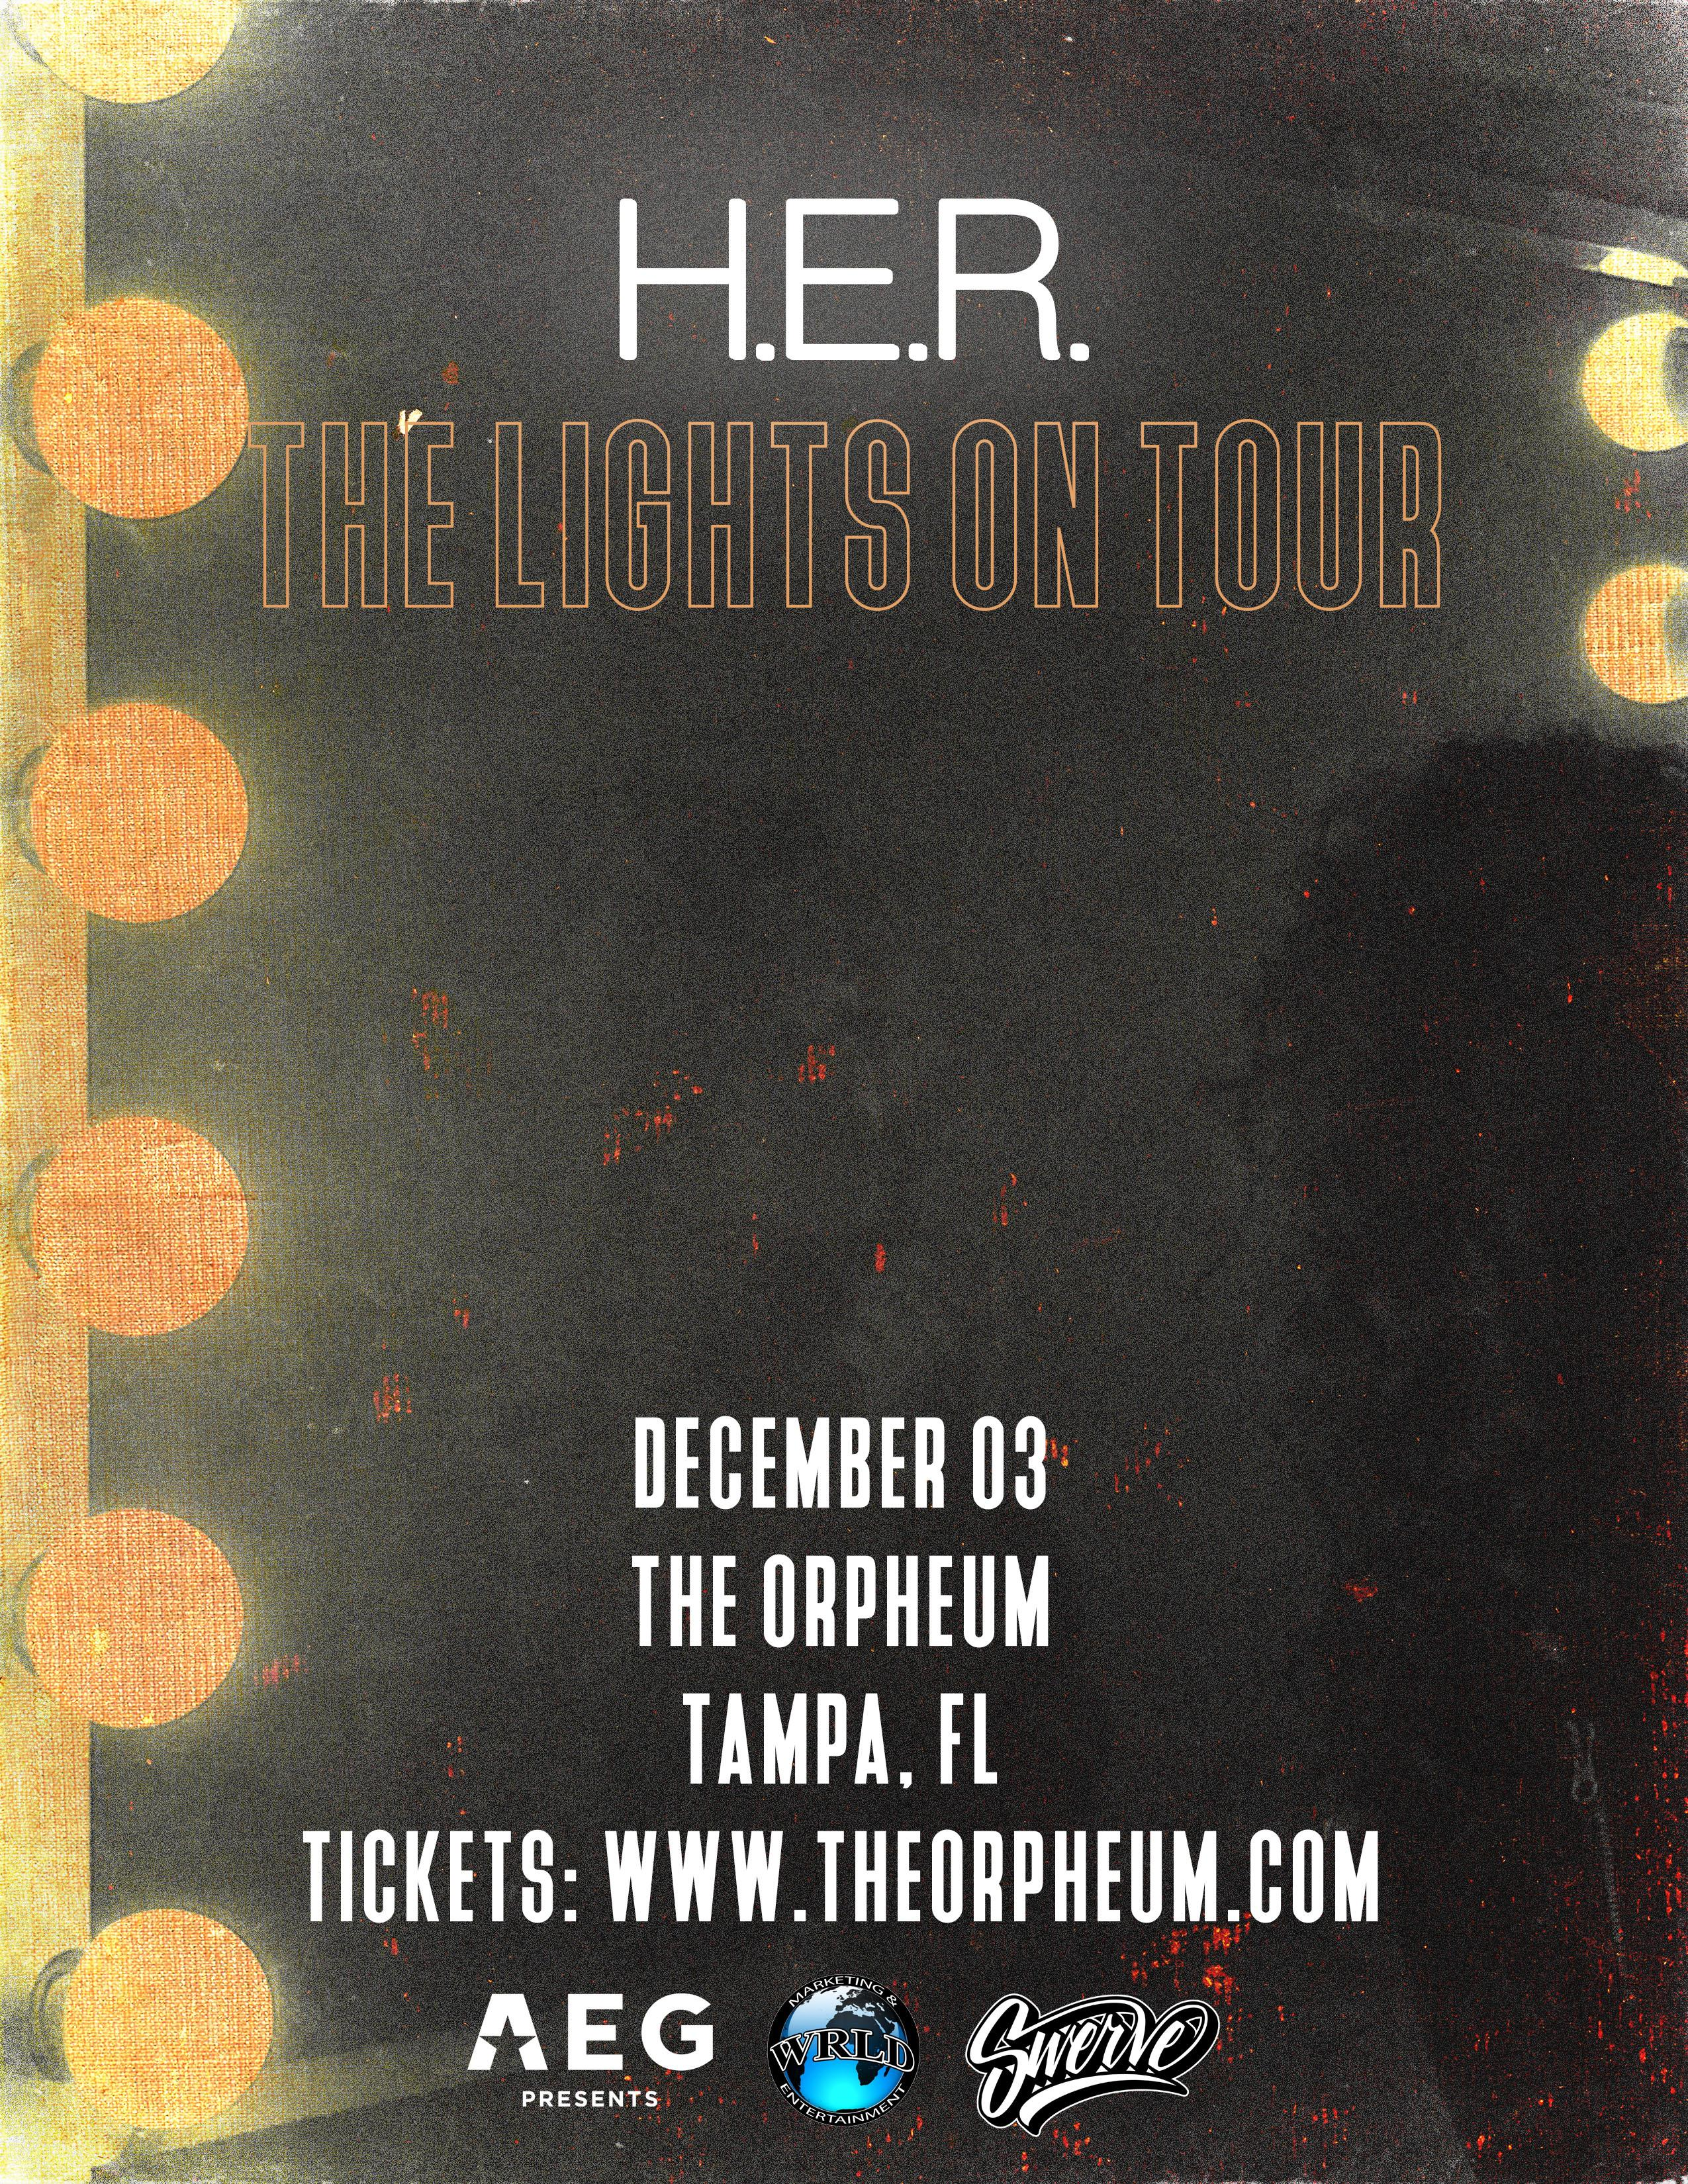 Hip hop radio stations in tampa fl - H E R The Orpheum